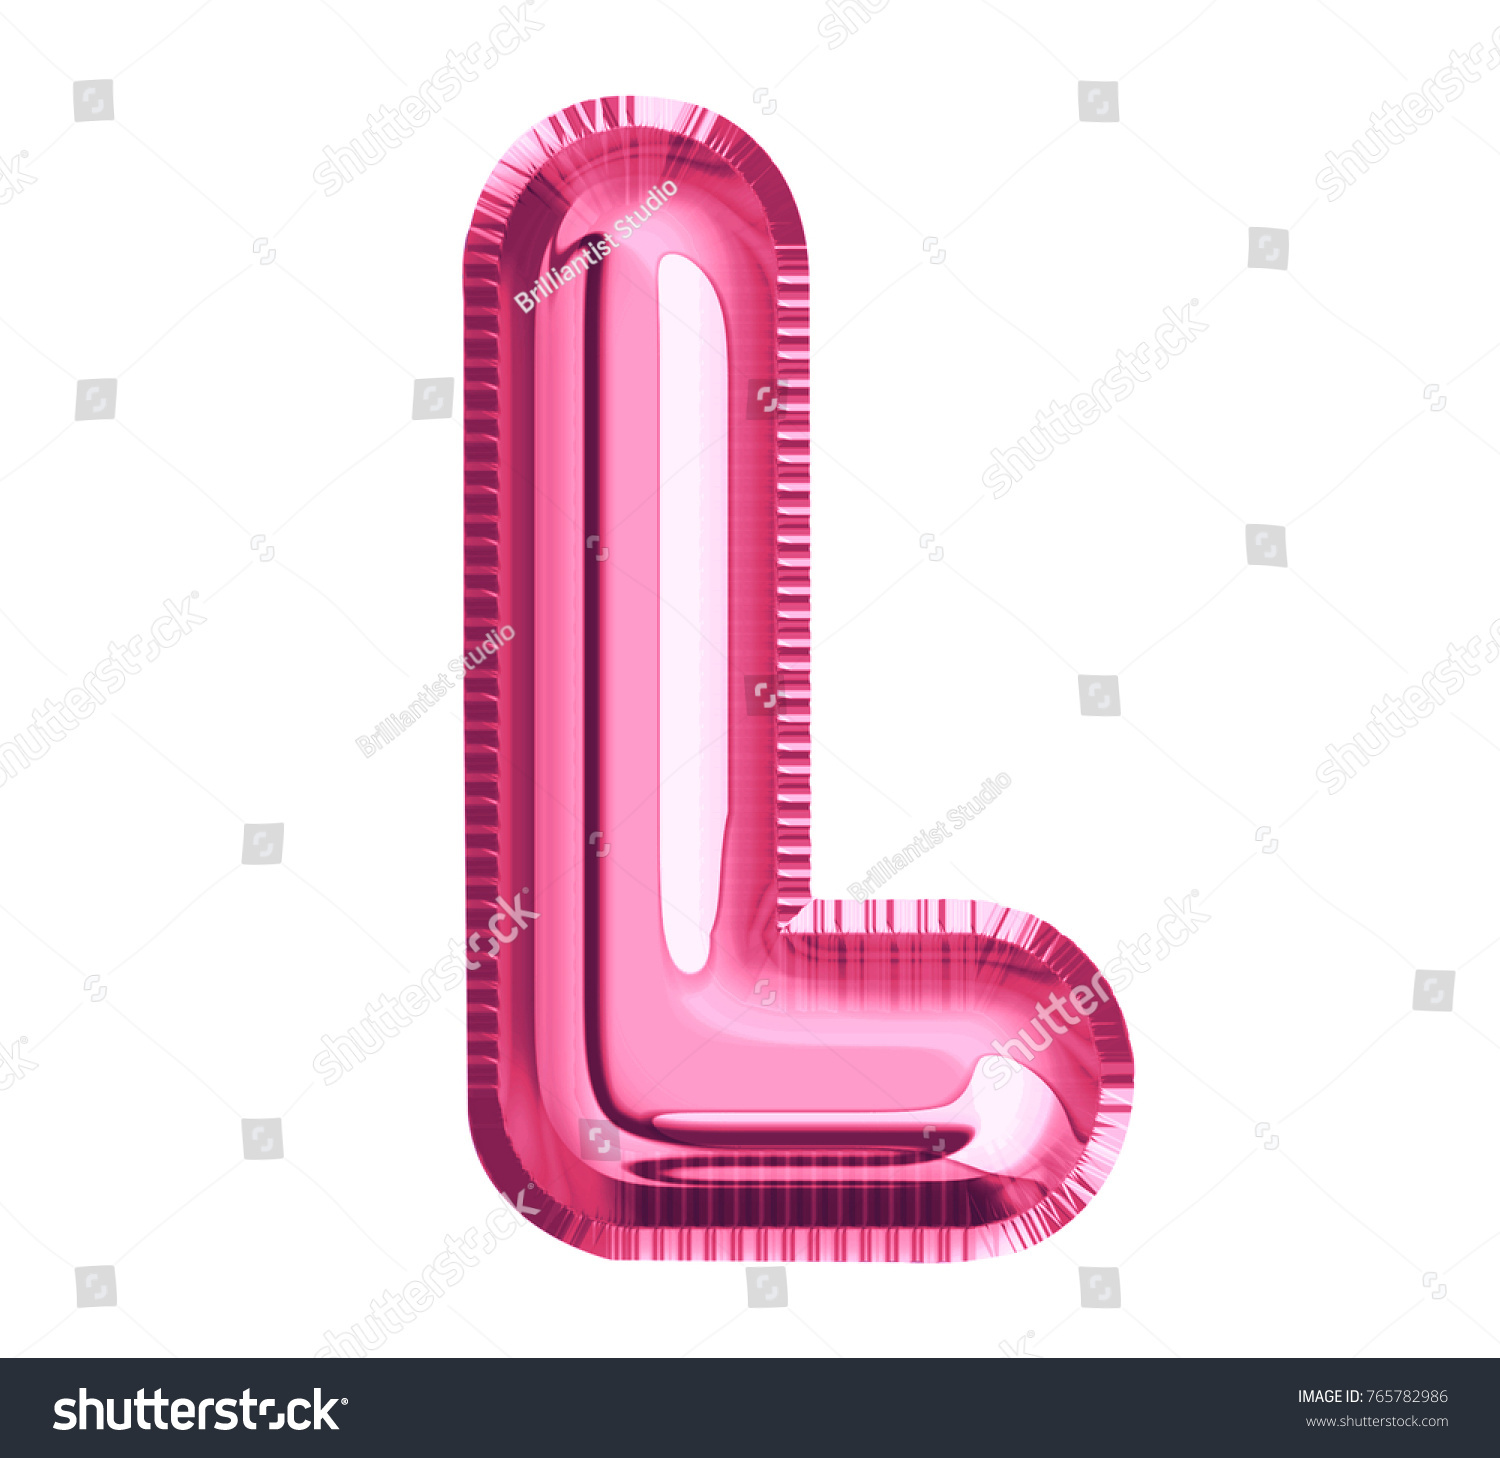 Royalty Free Stock Illustration of Balloon Pink Color Font Letter L ...